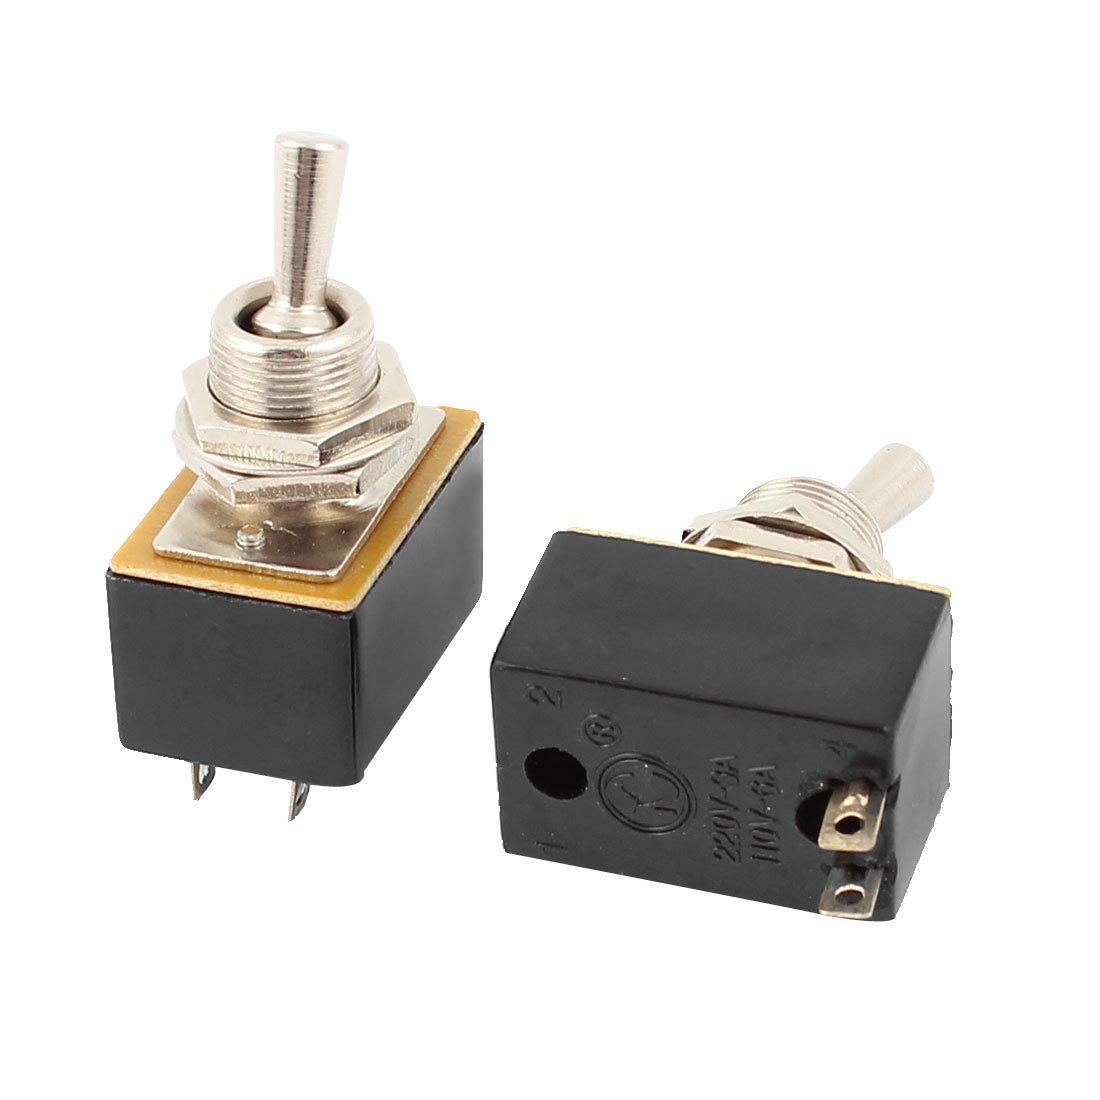 AC 220V/3A 110V/6A ON/OFF 2 Positions SPST Latching Toggle Switch 2pcs